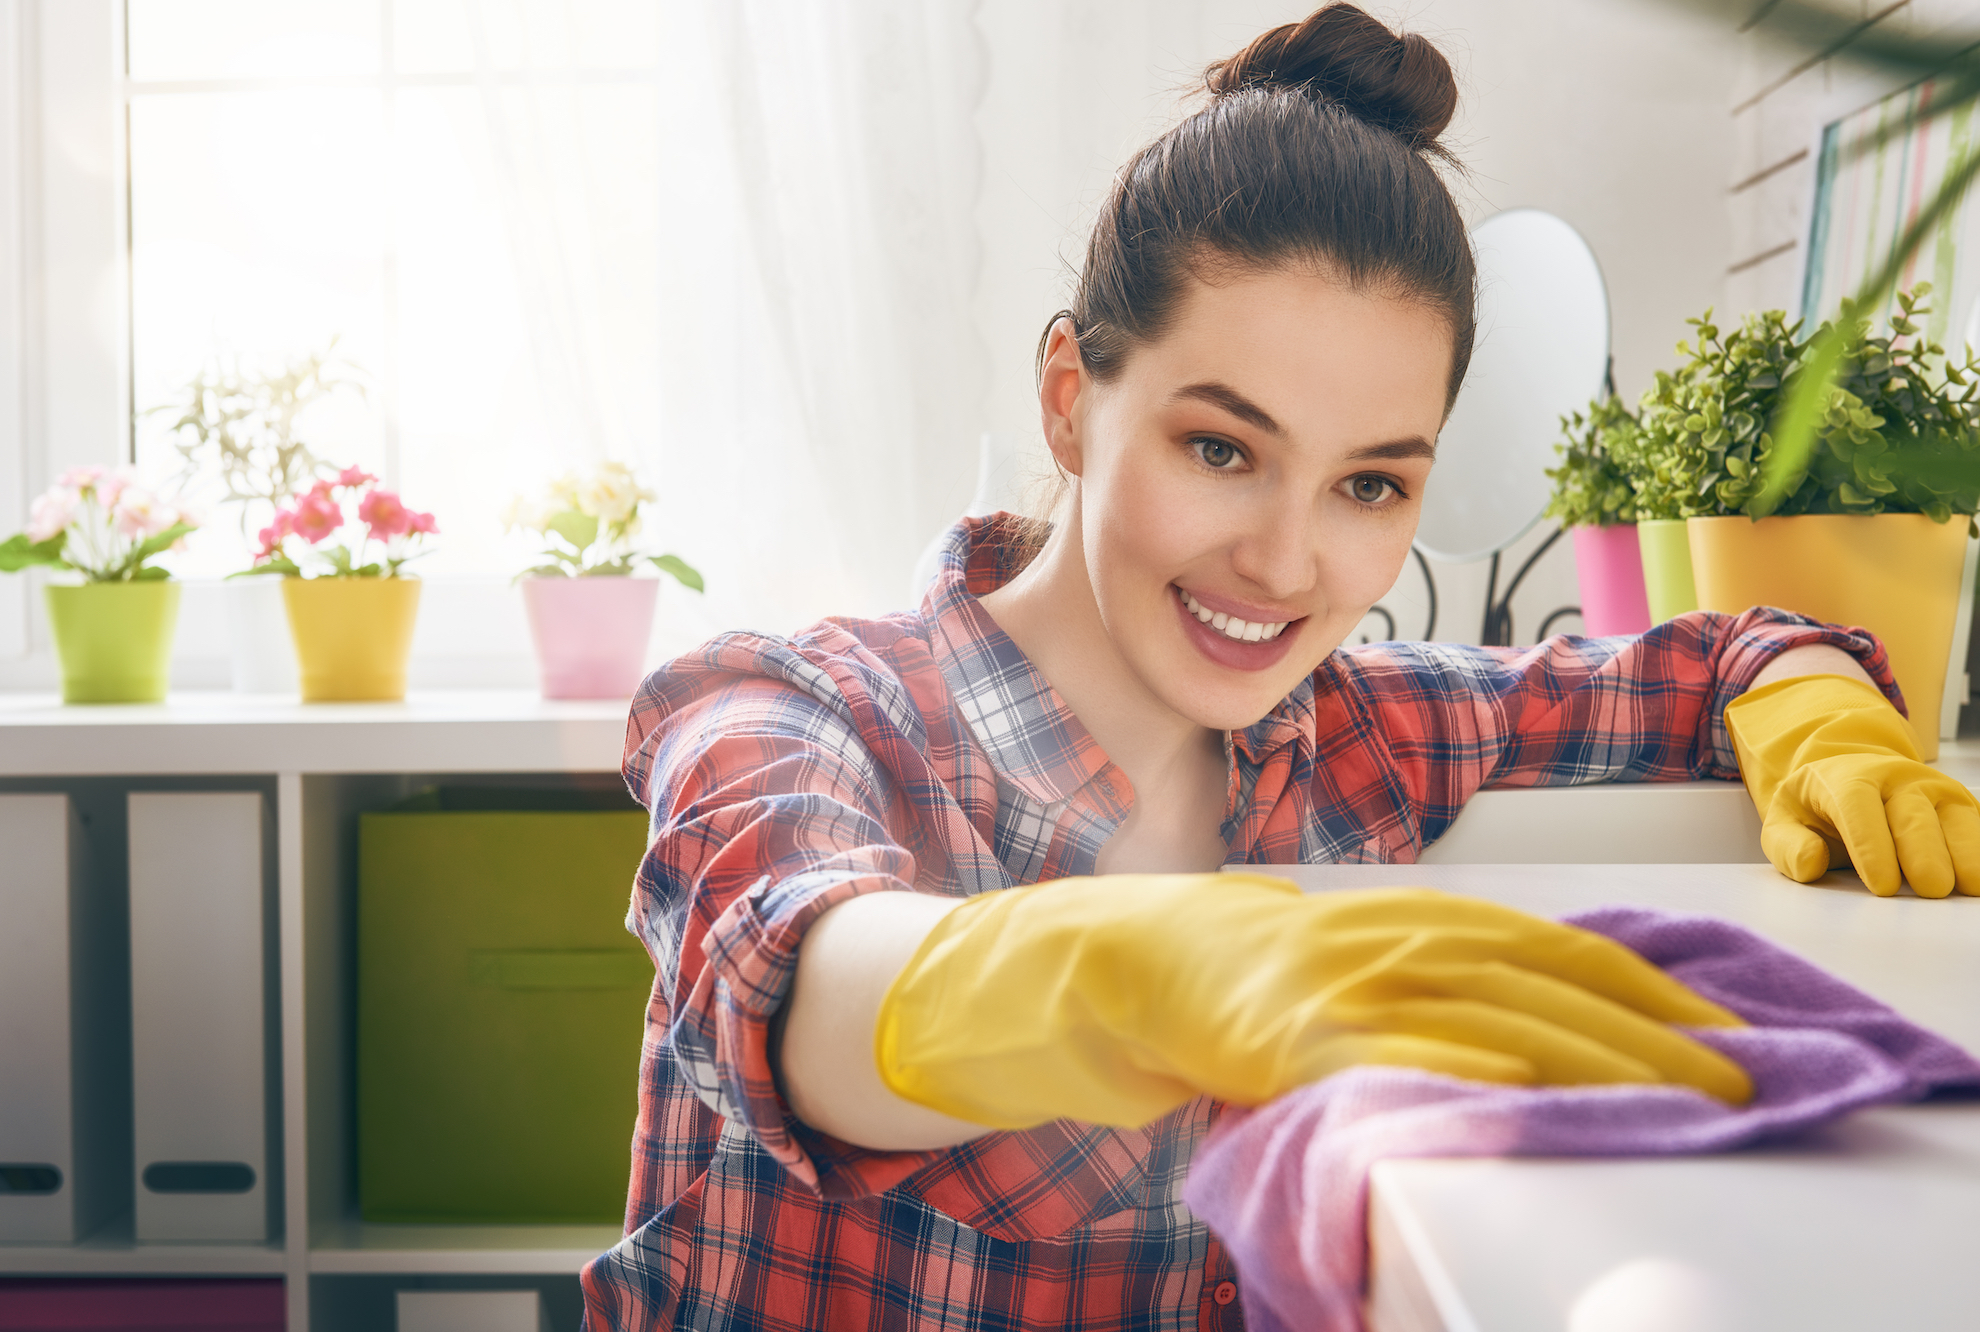 The EPA recommends you routinely partake in both handwashing and house-cleaning in order to lower your exposure indoor chemicals.